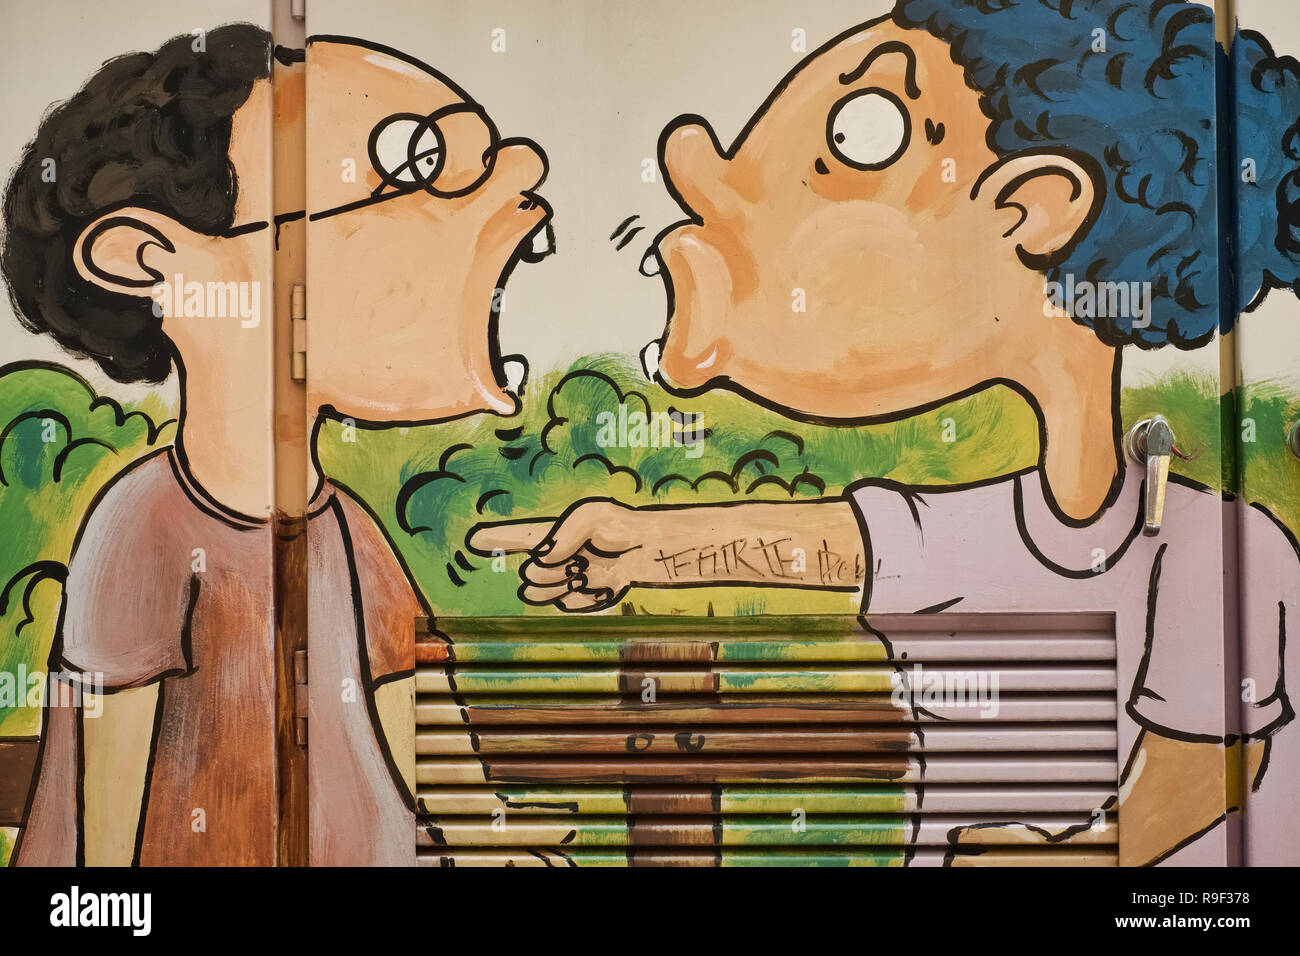 A painting applied by a student to beautify an ungainly power distributor in Bangkok, Thailand, depicting an argument or quarrel between youngsters - Stock Image